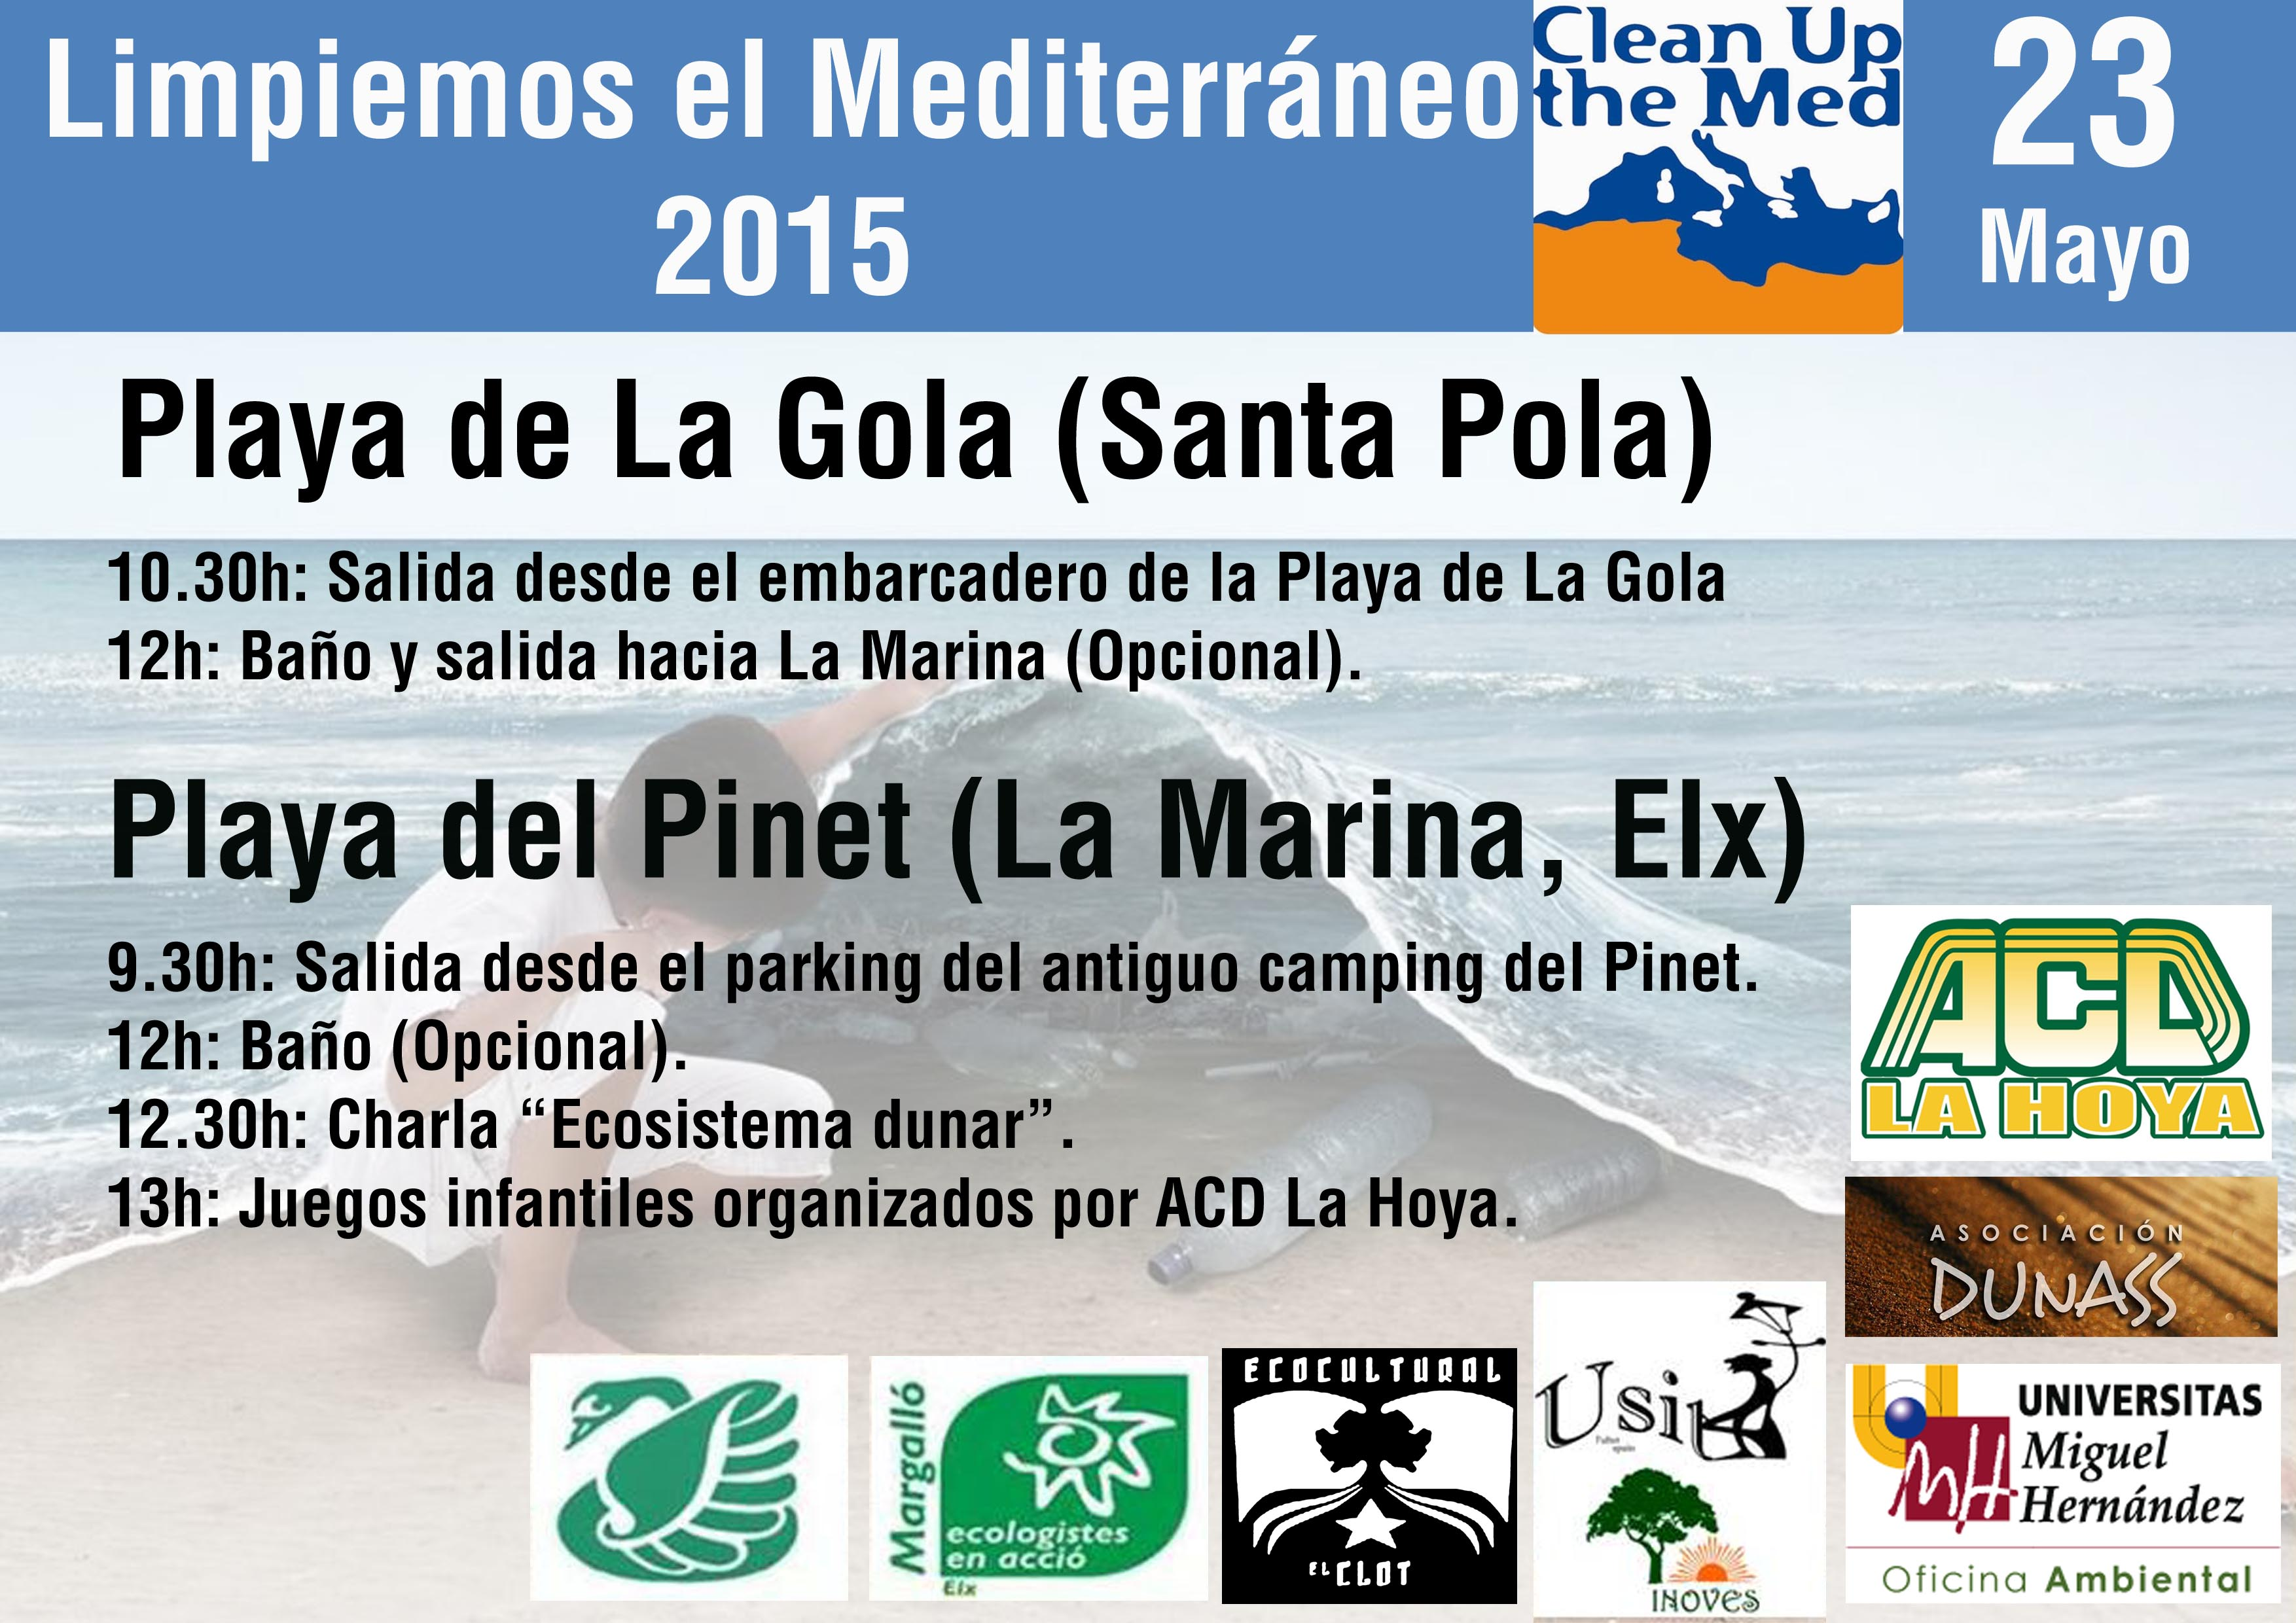 Clean Up the Med 2015